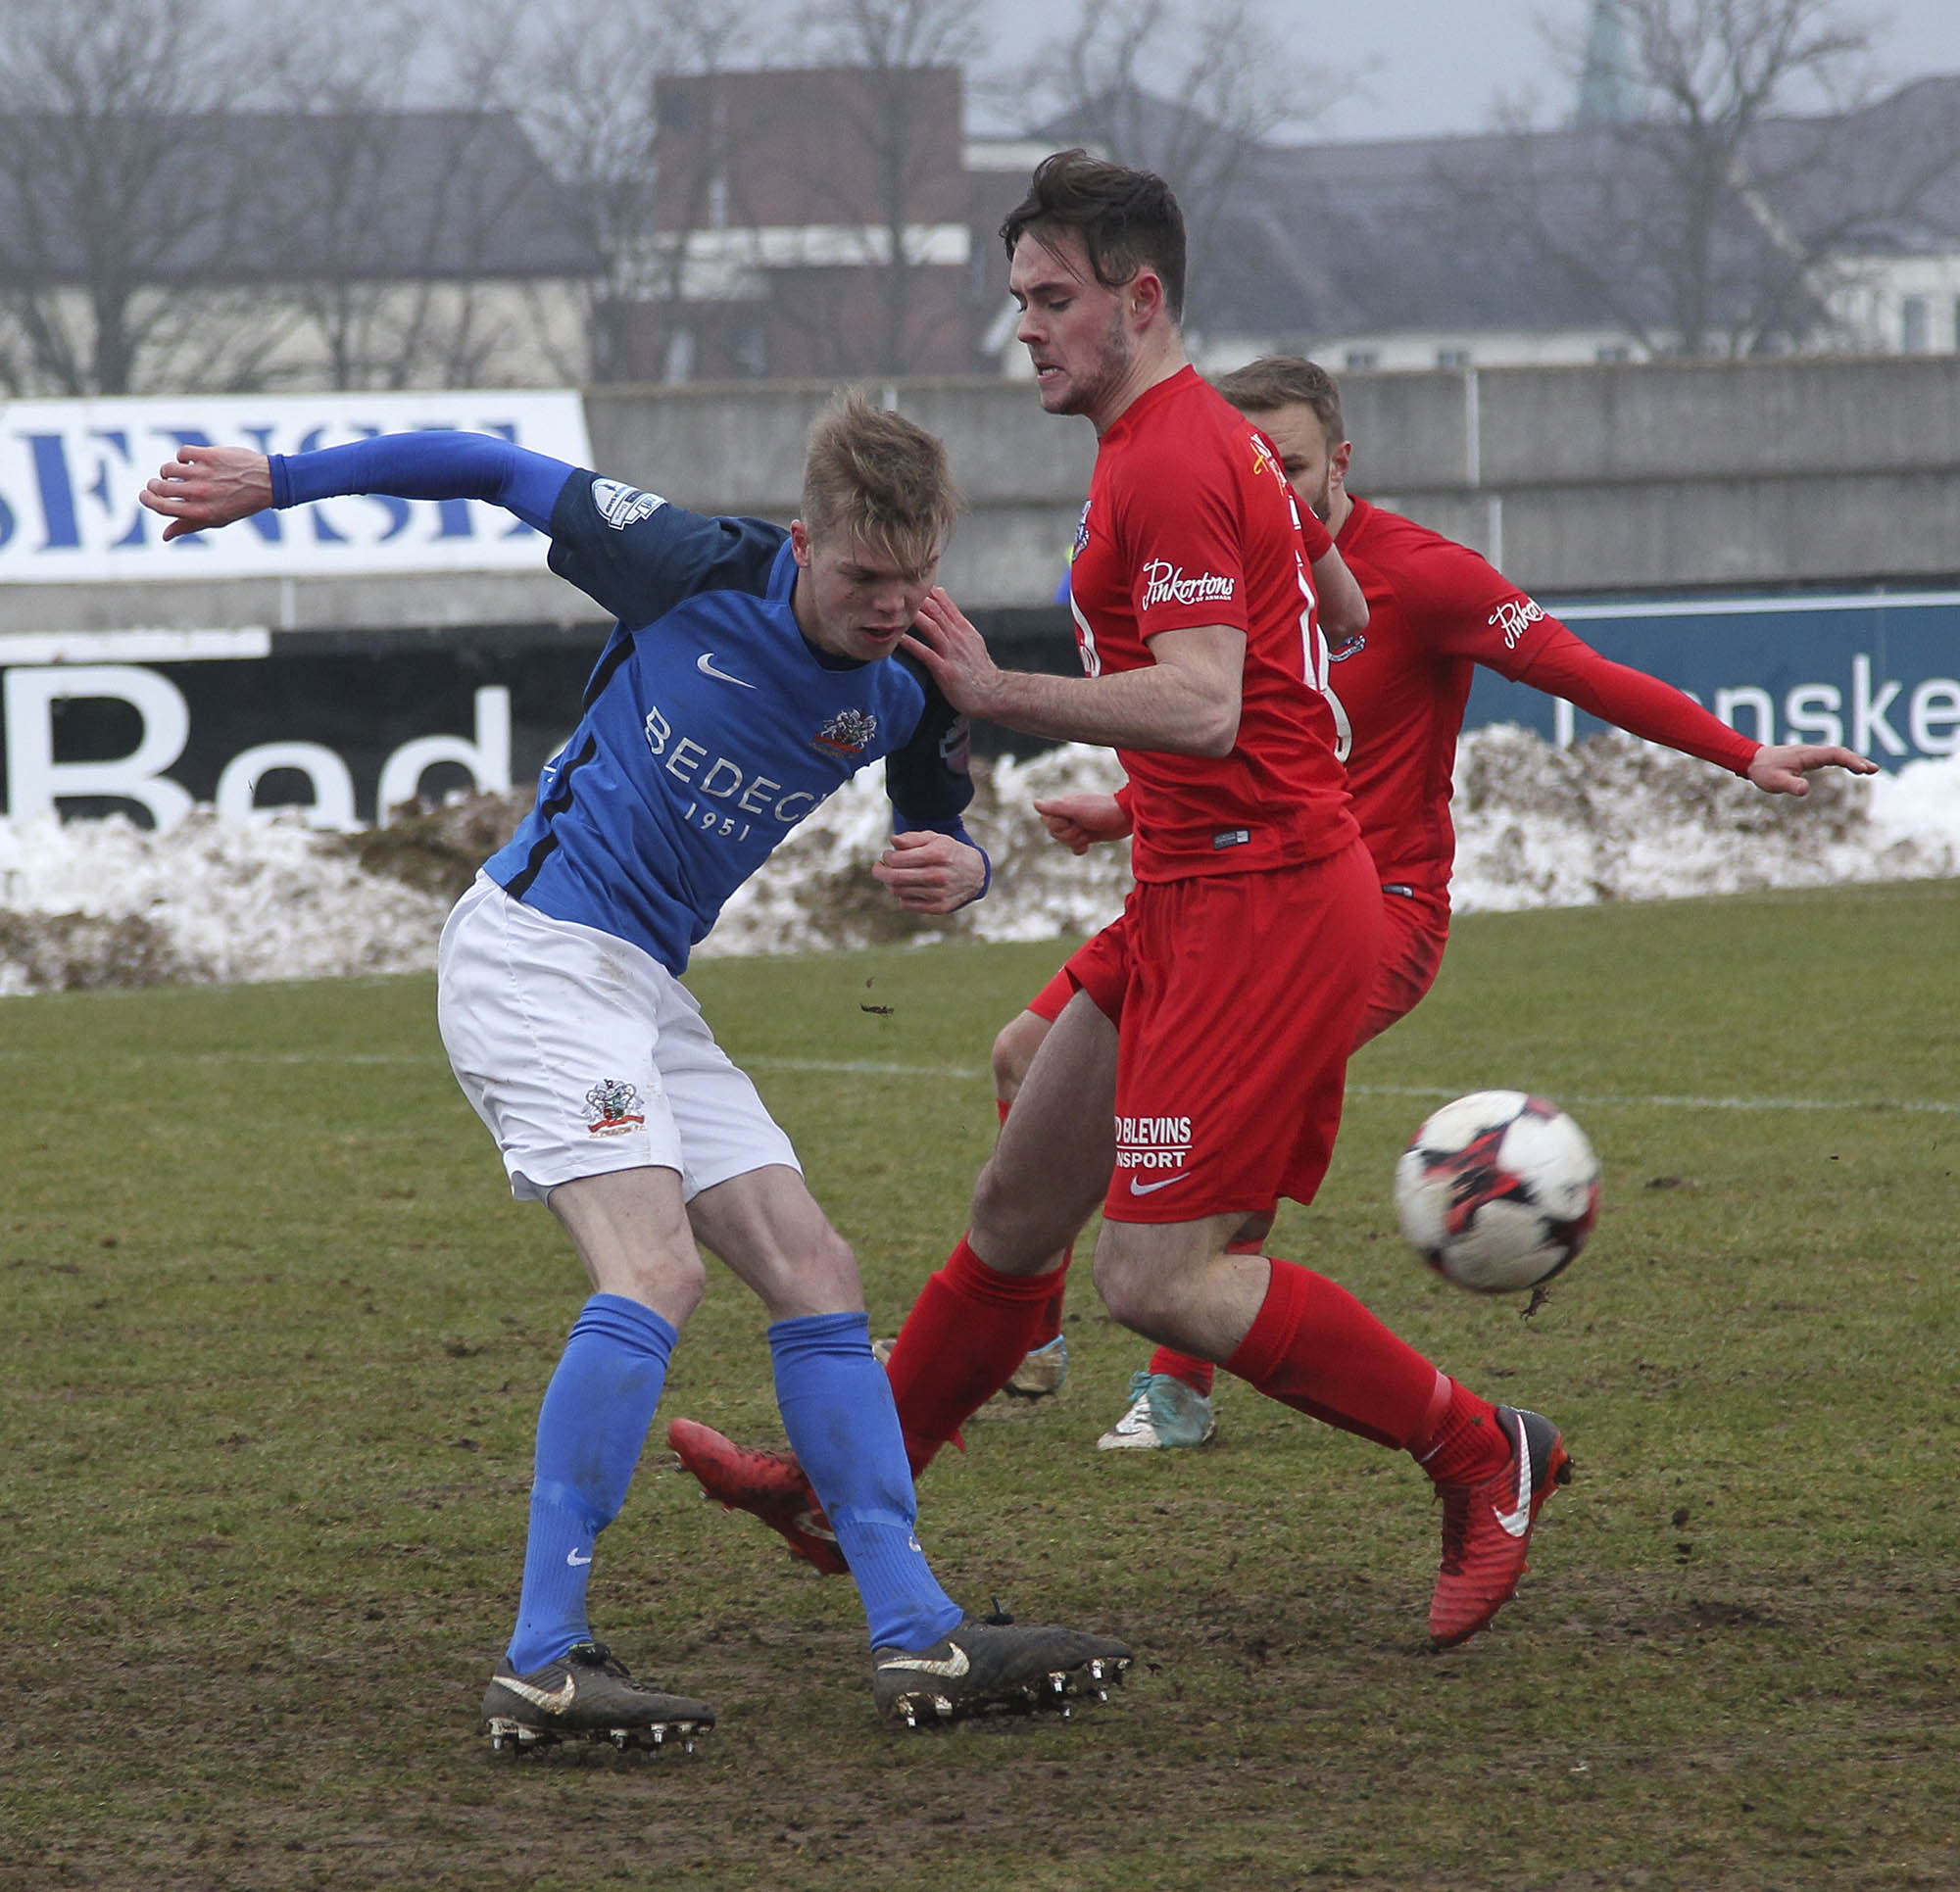 Glenavon Dumped Out of Cup by Loughgall